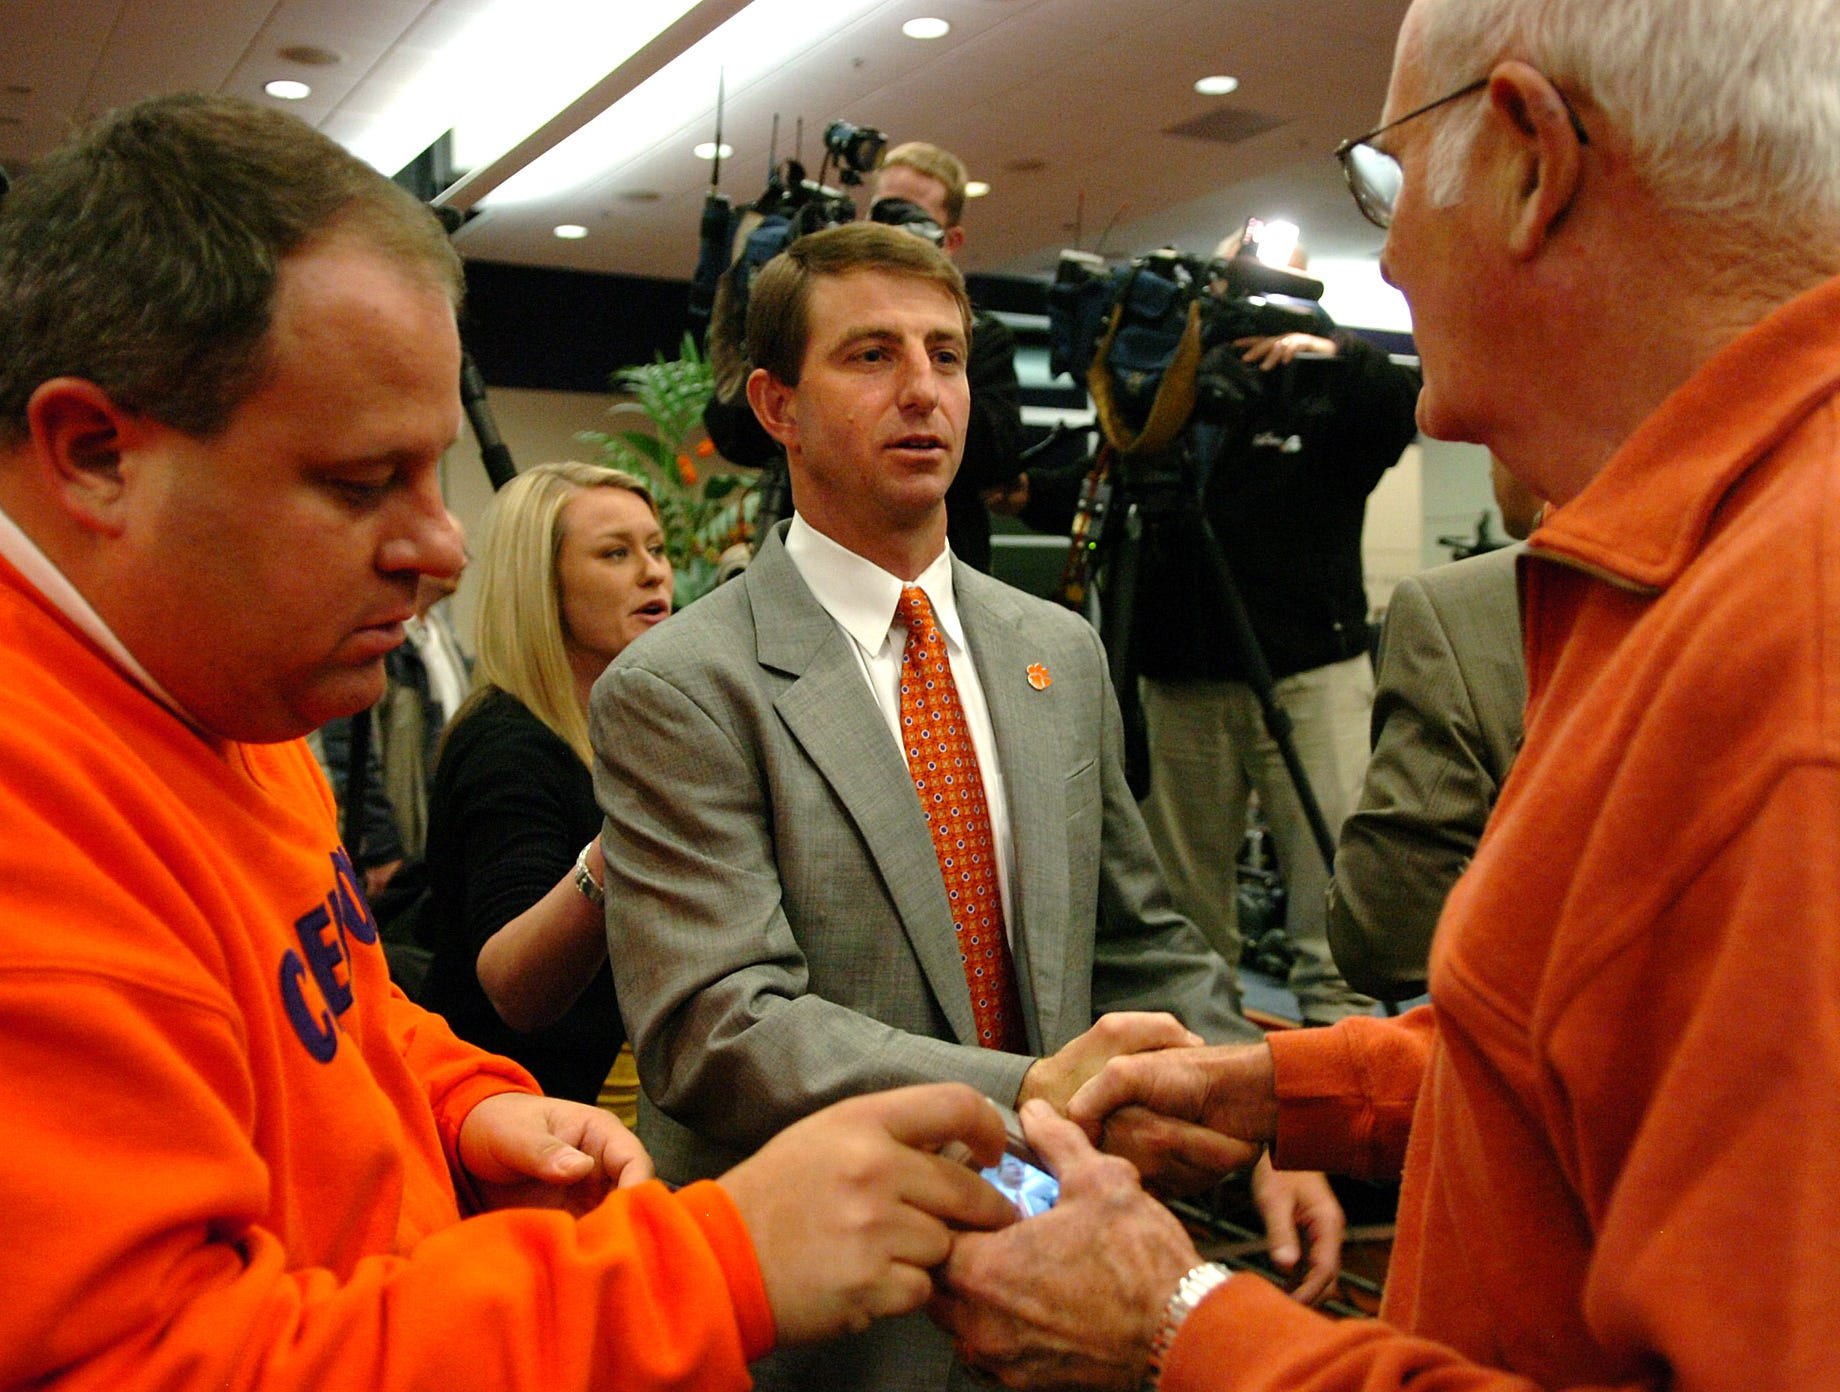 Dabo Swinney is congratulated by fans after he was announced as Clemson's head football coach during a press conference at Memorial Stadium in Clemson Monday, December 1,  2008.